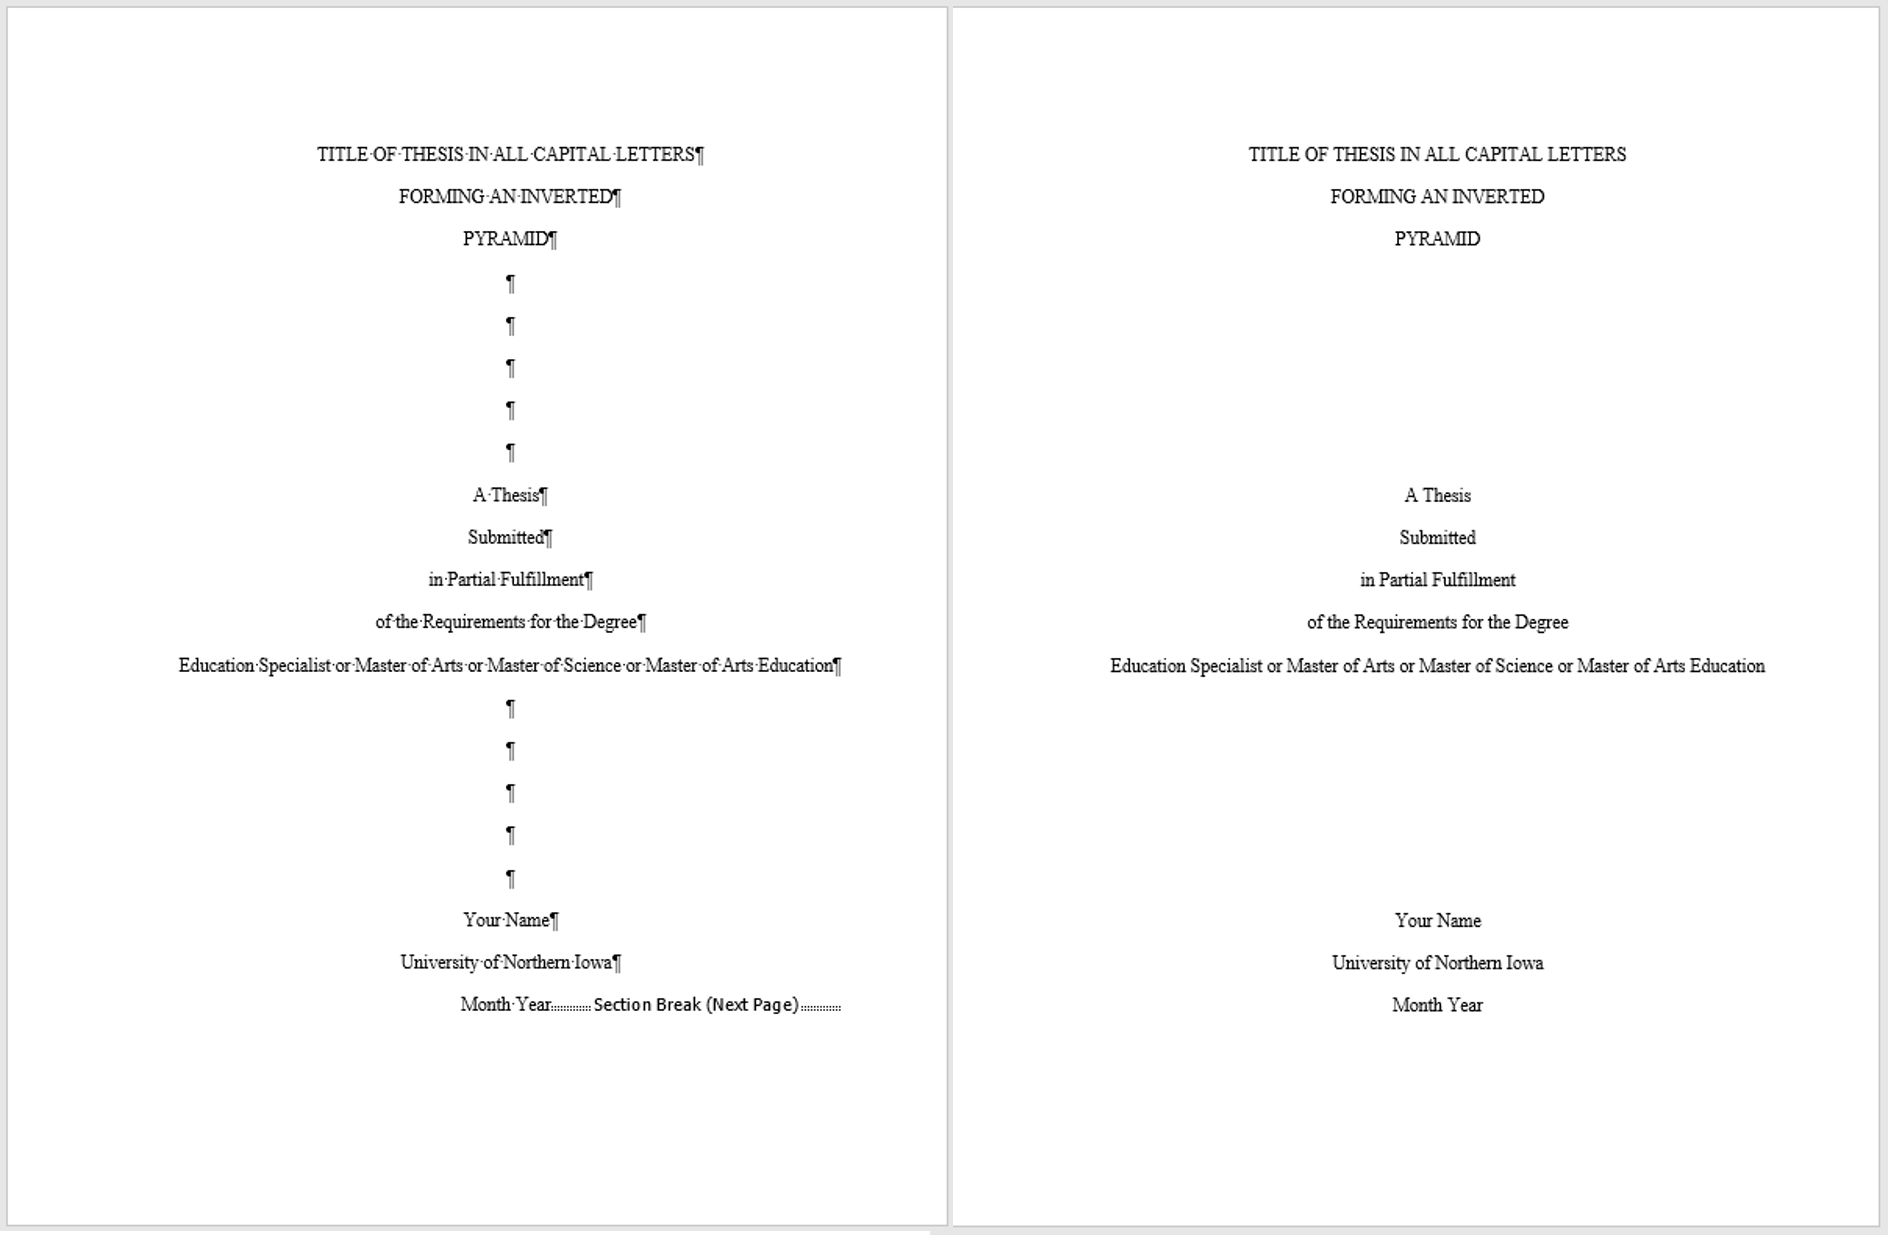 the thesis title page with and without markup to show location of section break (next page) at the end